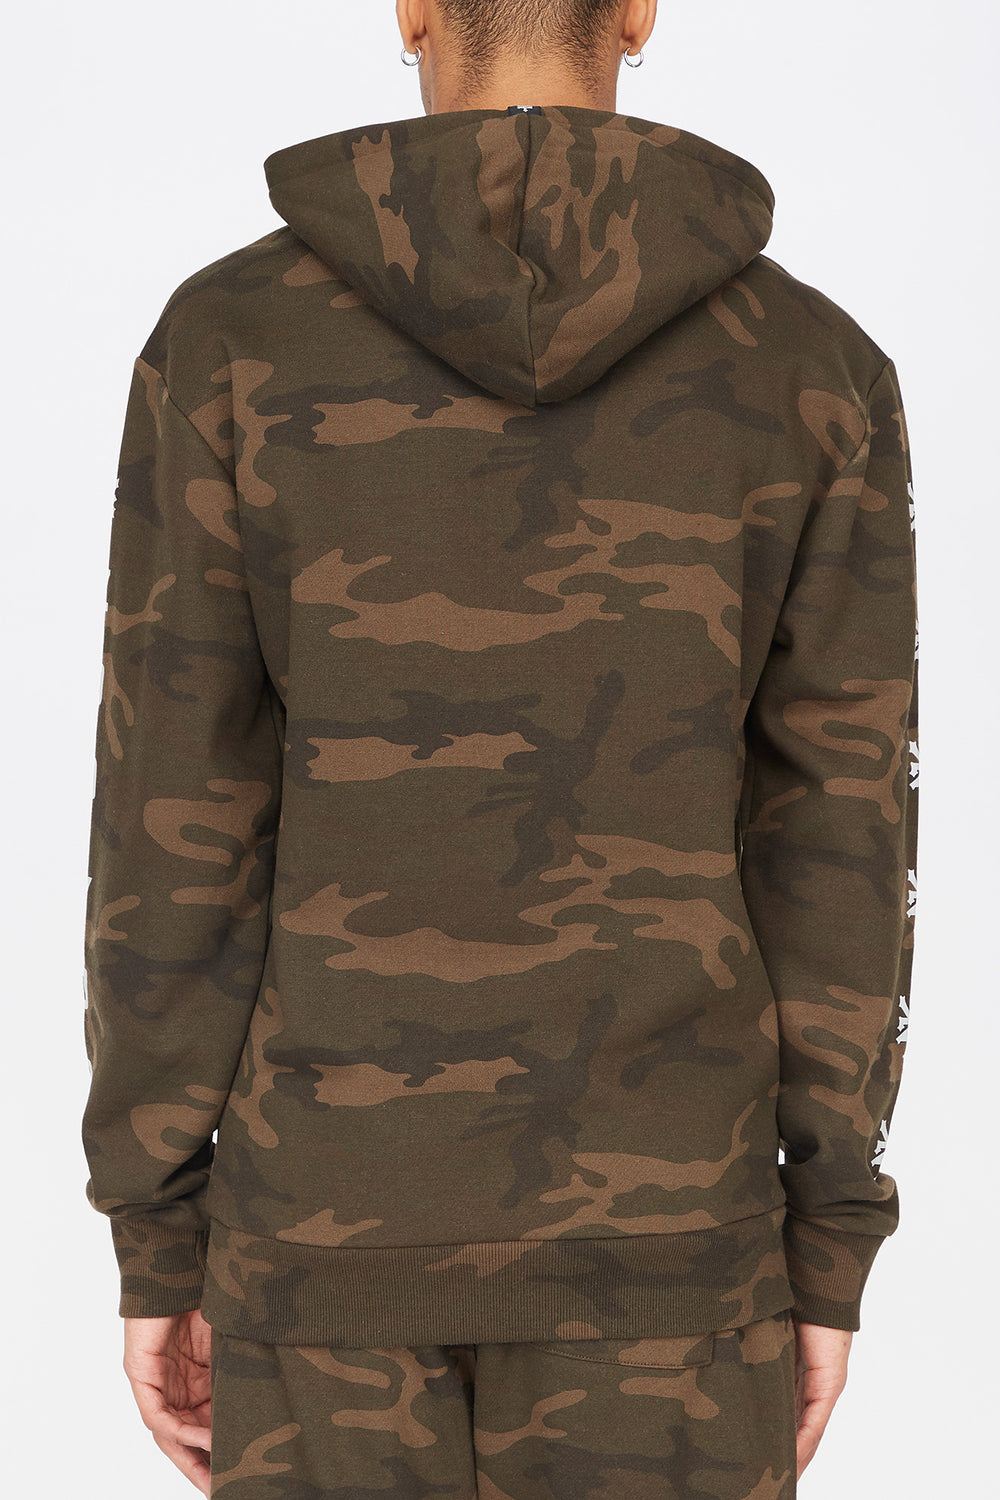 Zoo York Mens Camo Popover Hoodie Camouflage